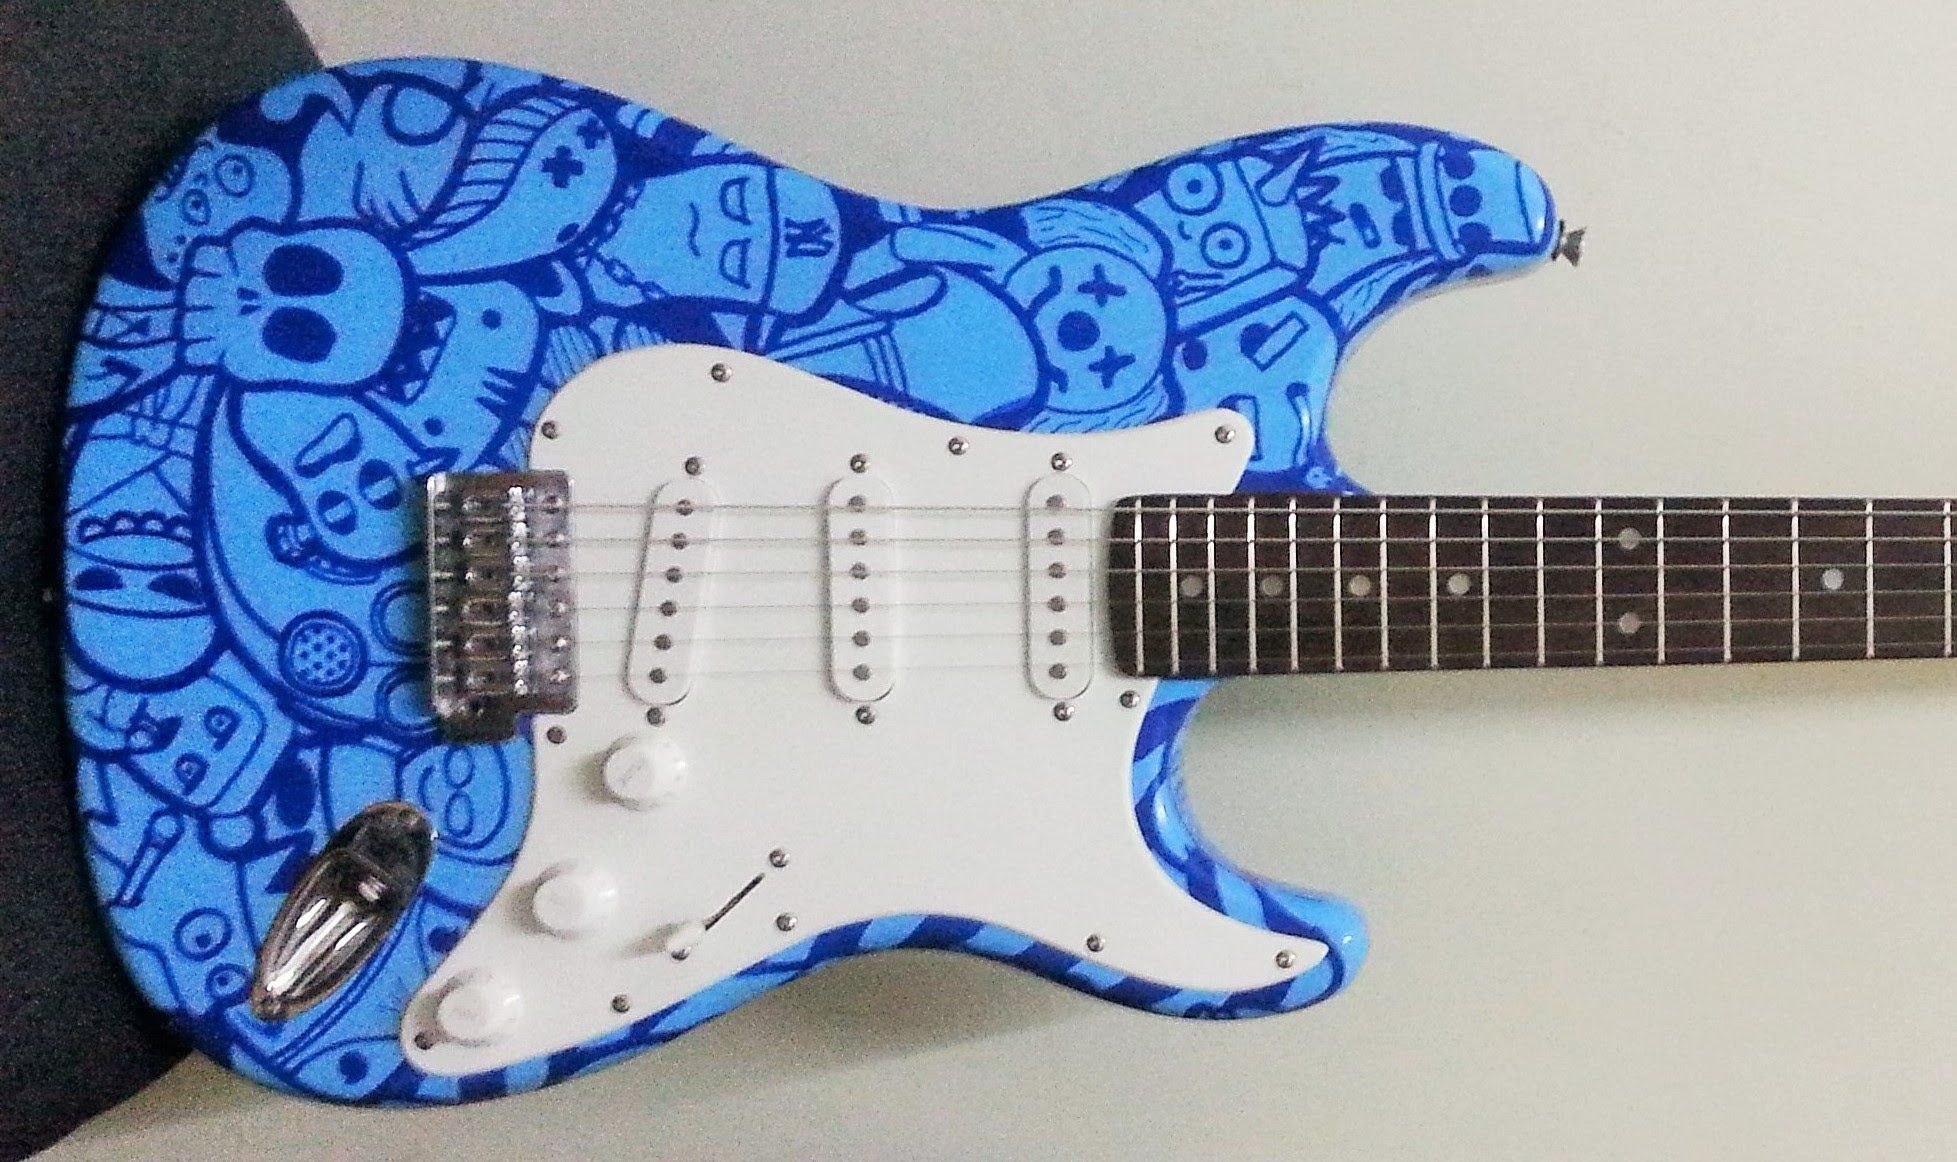 CUSTOM GUITAR paint job using posca pen with doodle art ...